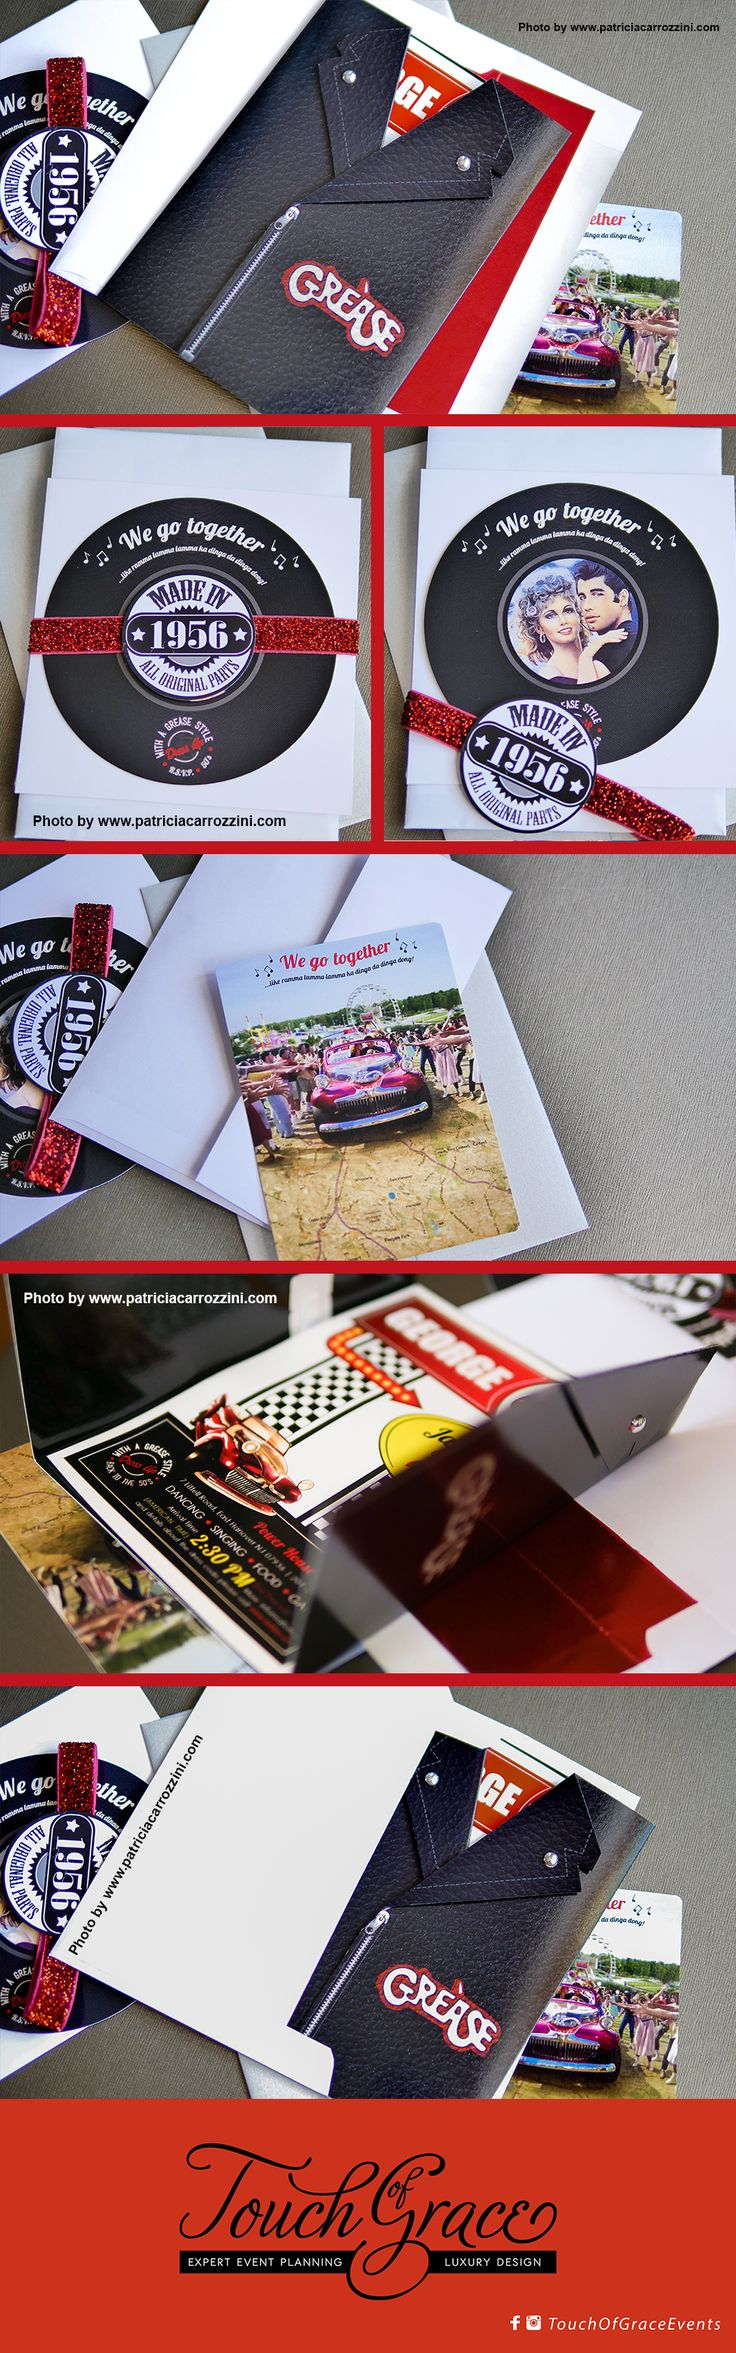 Adorable Party Ideas for Music Lovers: Musical Invitations for a 60th Birthday Celebration. Back to the 60's, Grease. We go together...